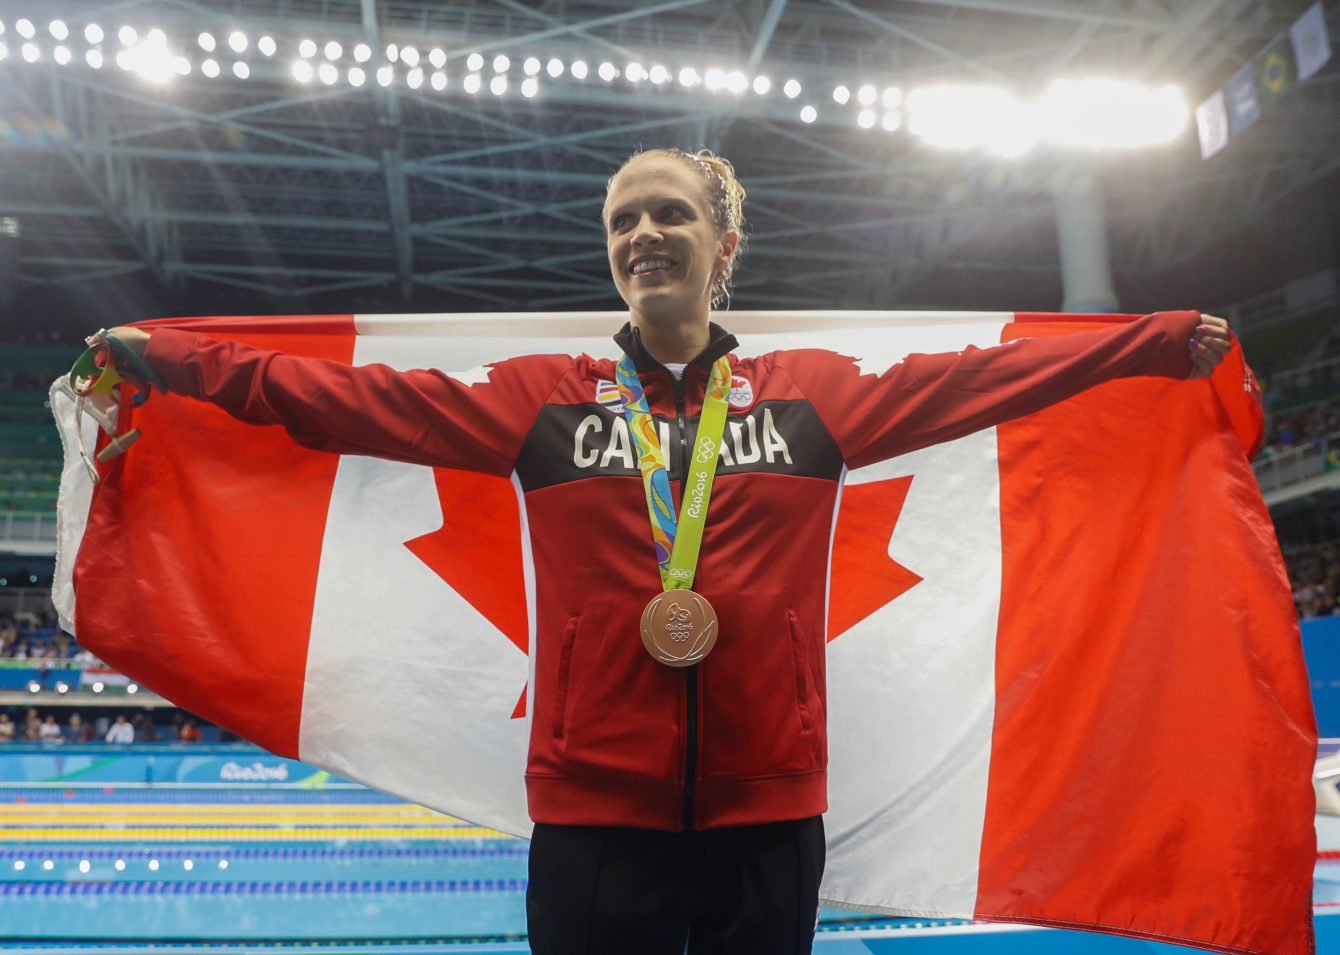 Canada's Hilary Caldwell with her bronze medal from winning the bronze medal in the women's 200-meter backstroke final during the swimming competitions at the 2016 Summer Olympics, Thursday, Aug. 12, 2016, in Rio de Janeiro, Brazil. (COC Photo/Mark Blinch)